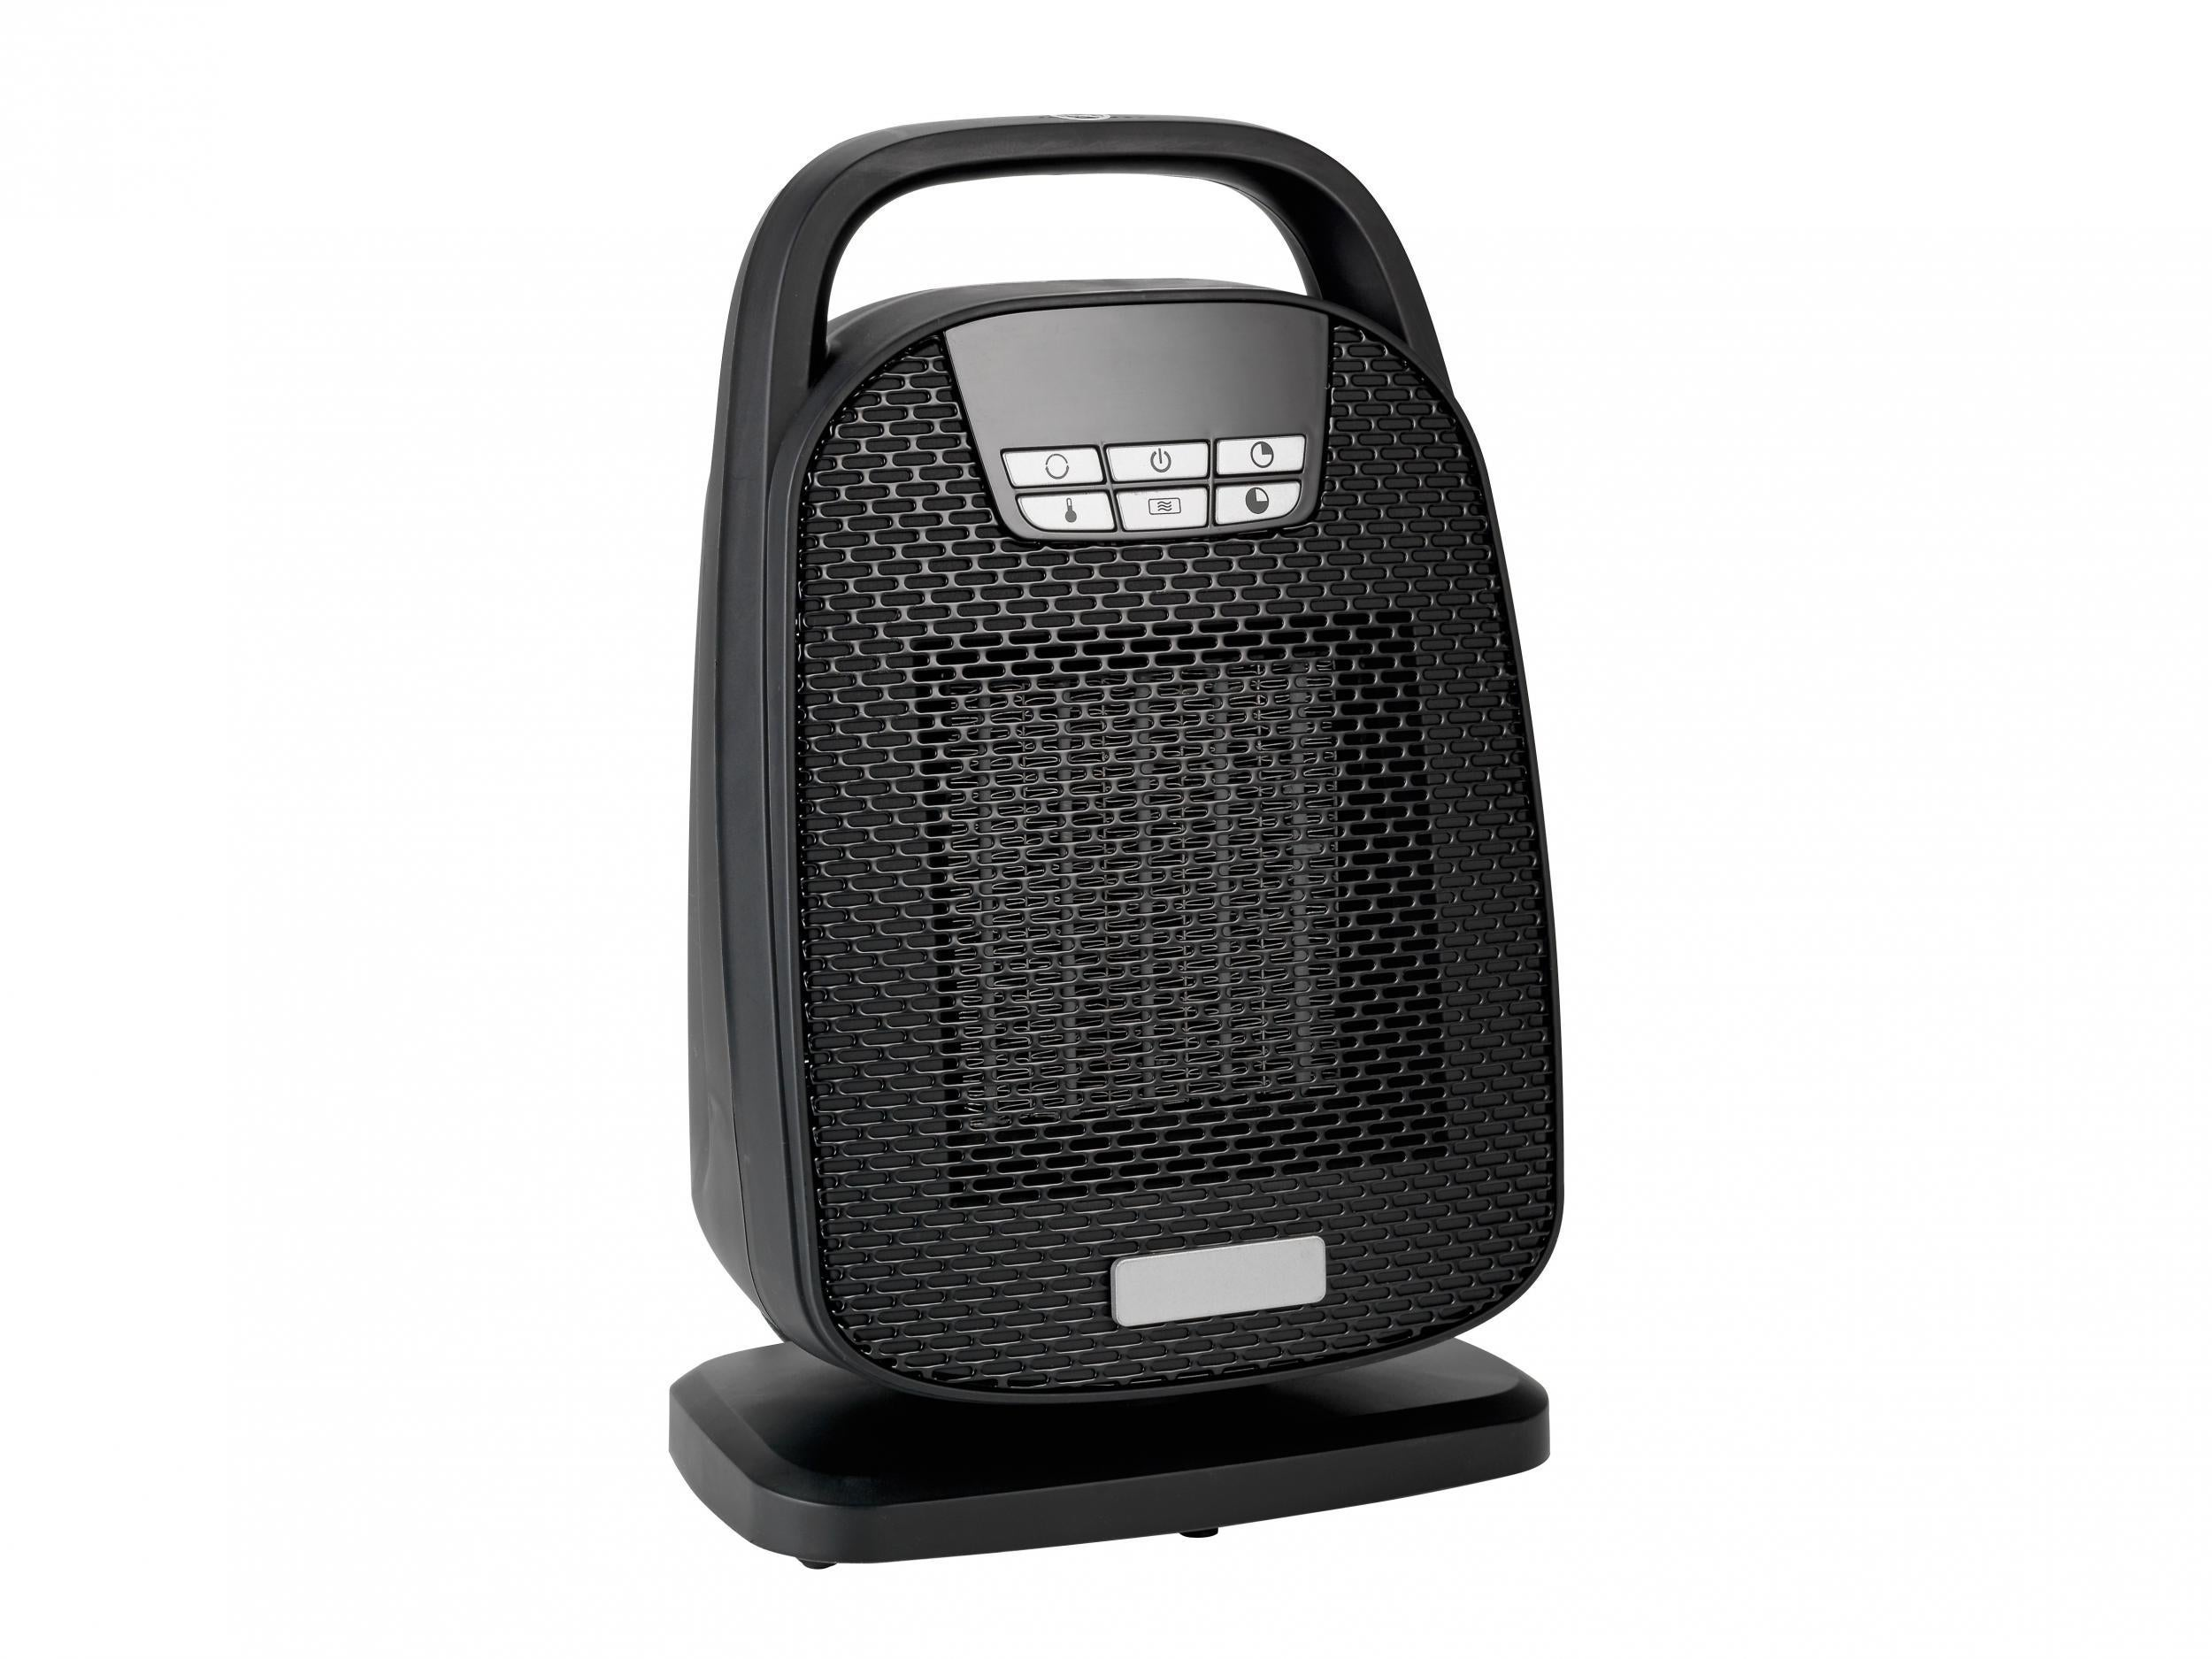 Golf Heater User Guide Ebook Imo S80 Hero Array 9 Best Portable Heaters The Independent Rh